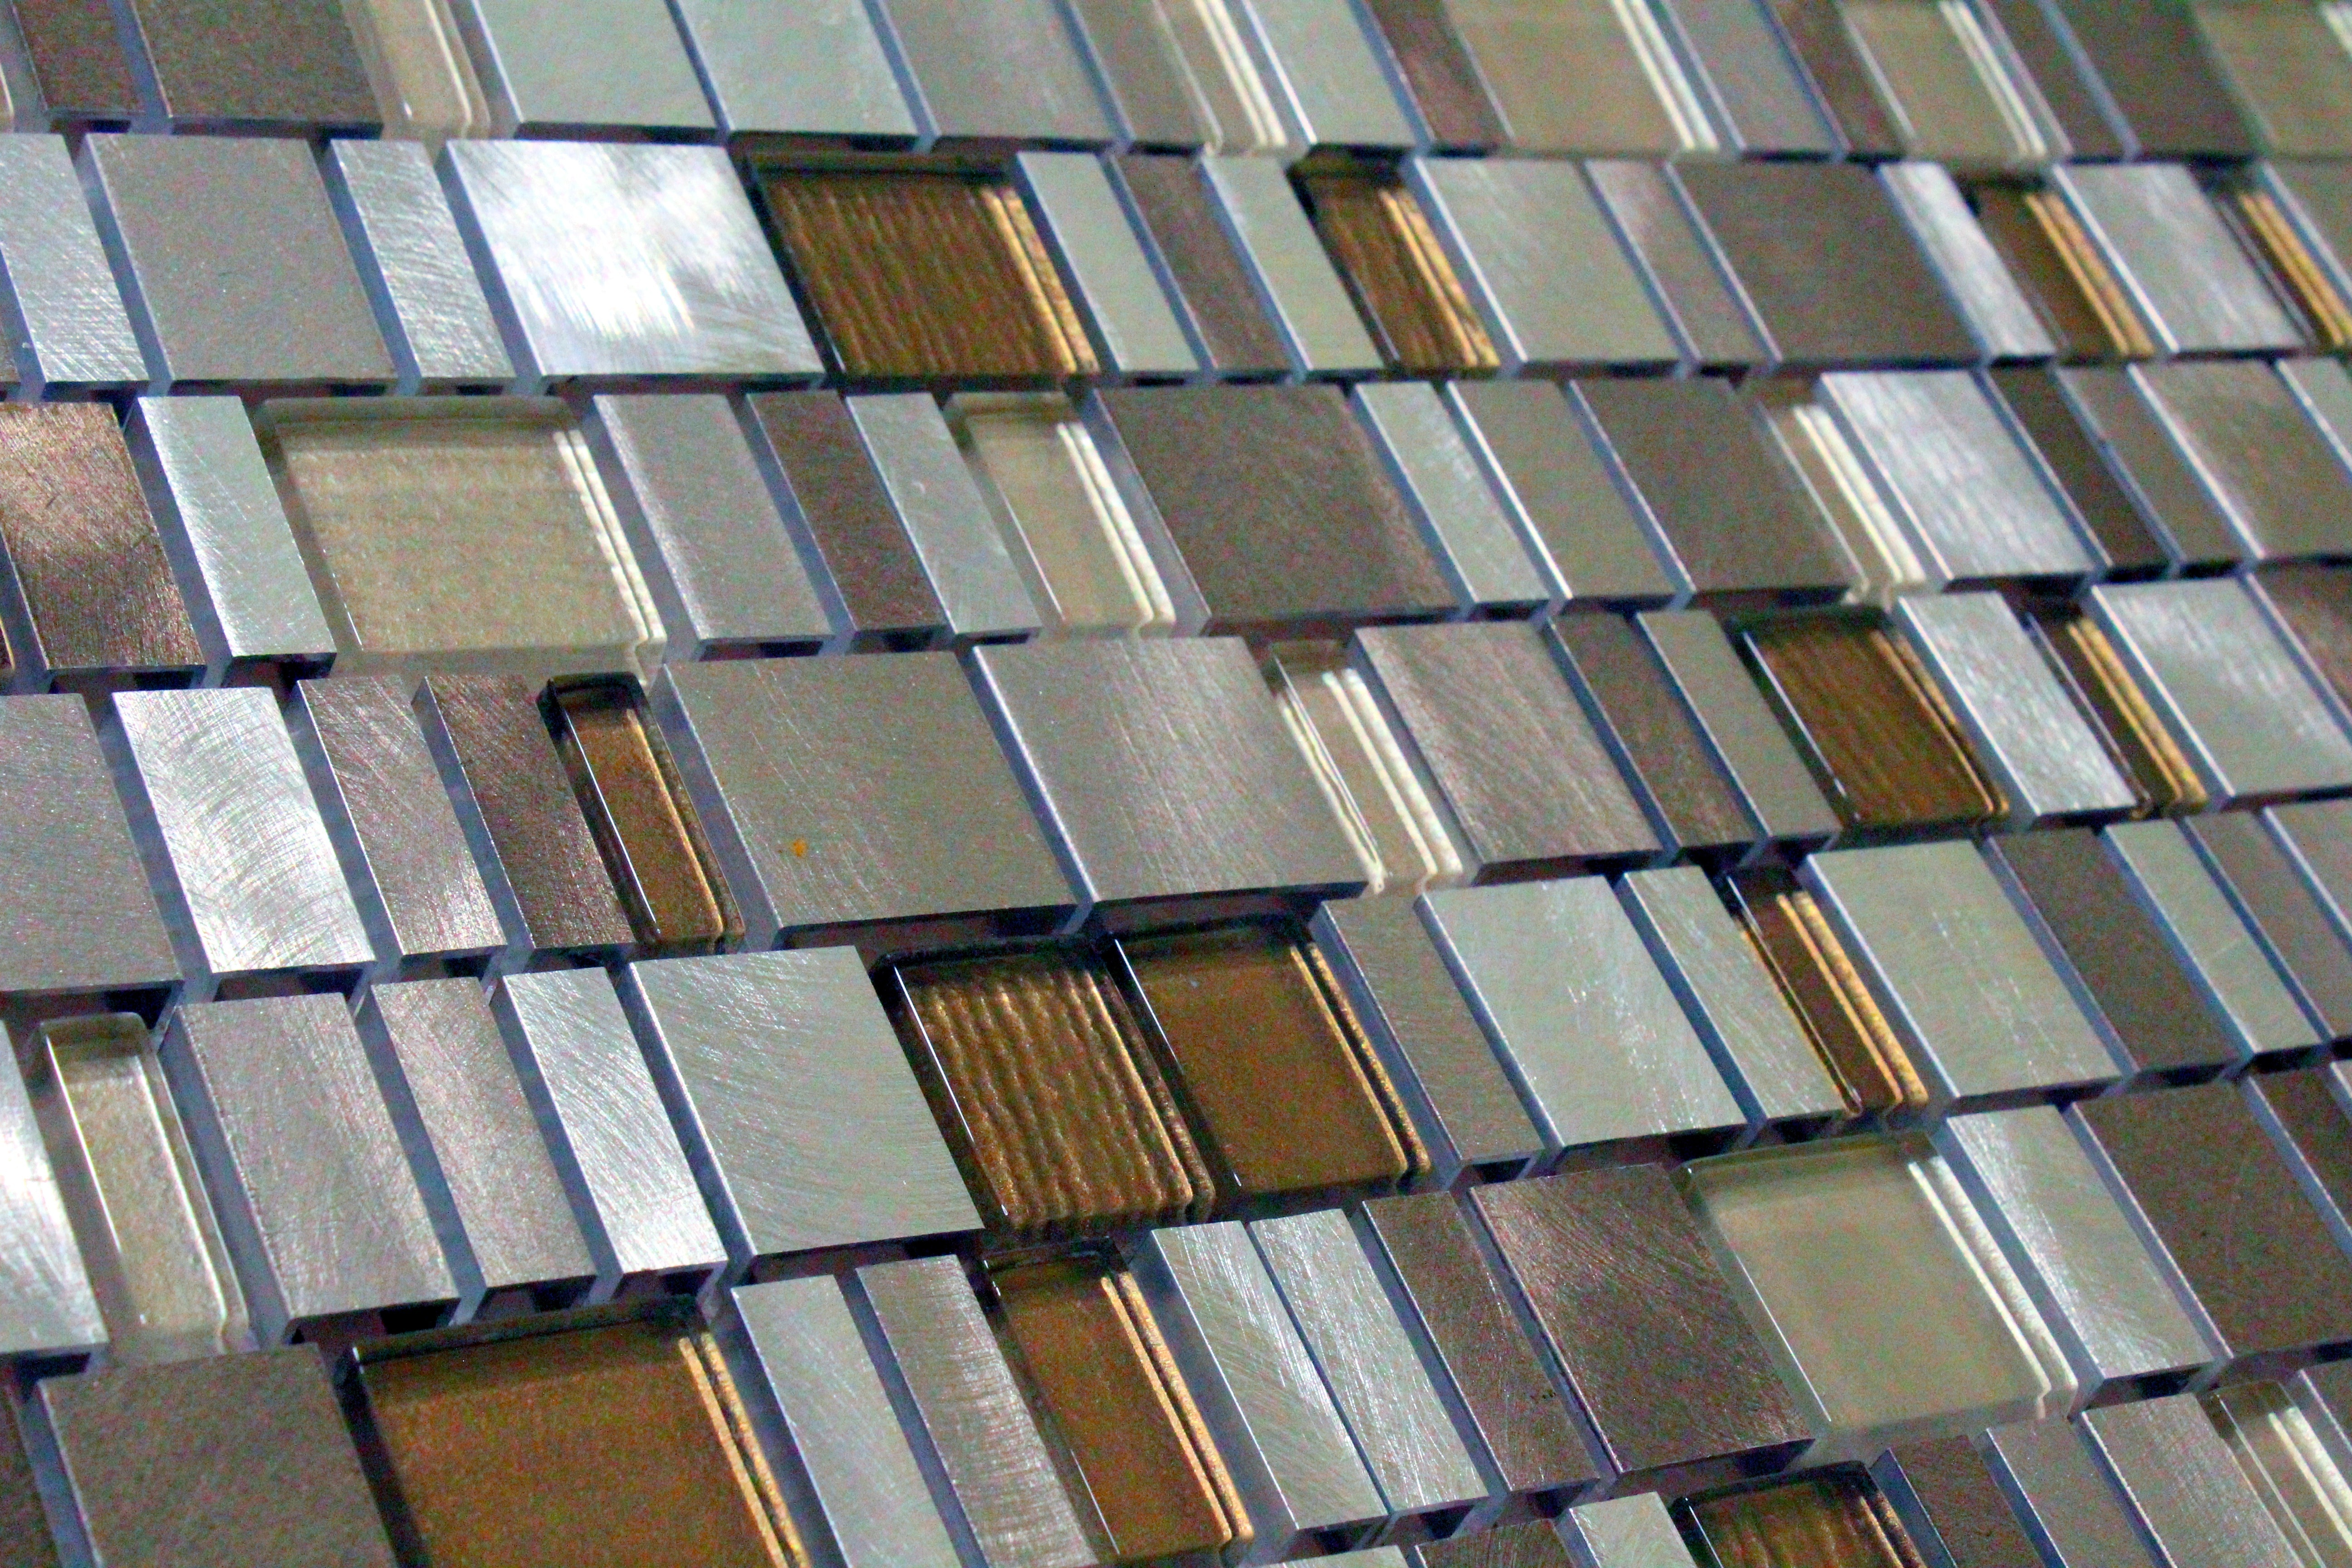 Glass Mosaic / 12 x 12 x 0.31 inches / Glossy Random Sized Squares Glass & Aluminum Mosaic Tile In Earth 0